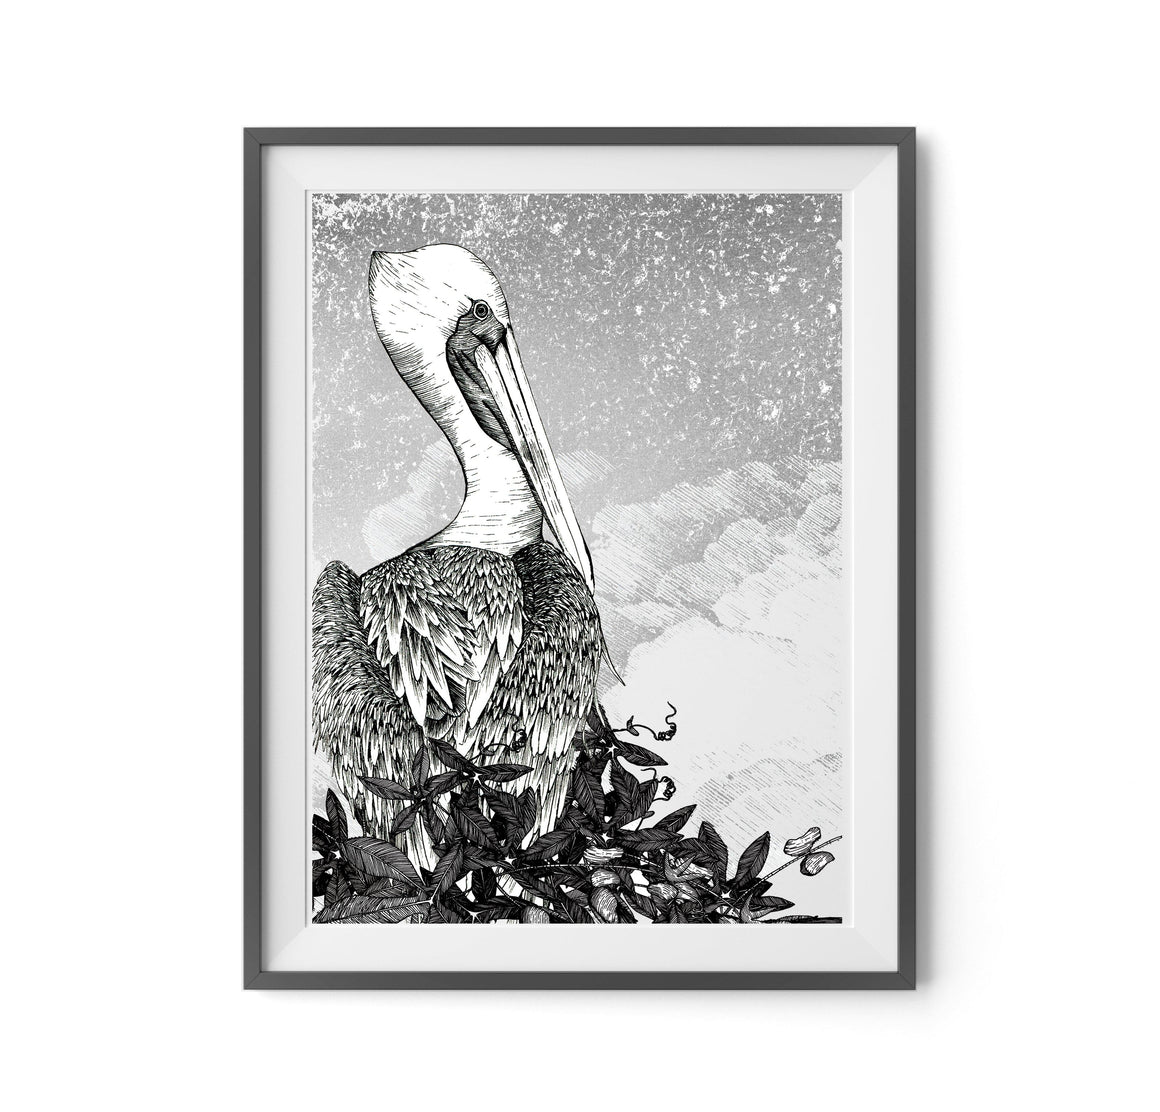 PELICAN SCREEN PRINT